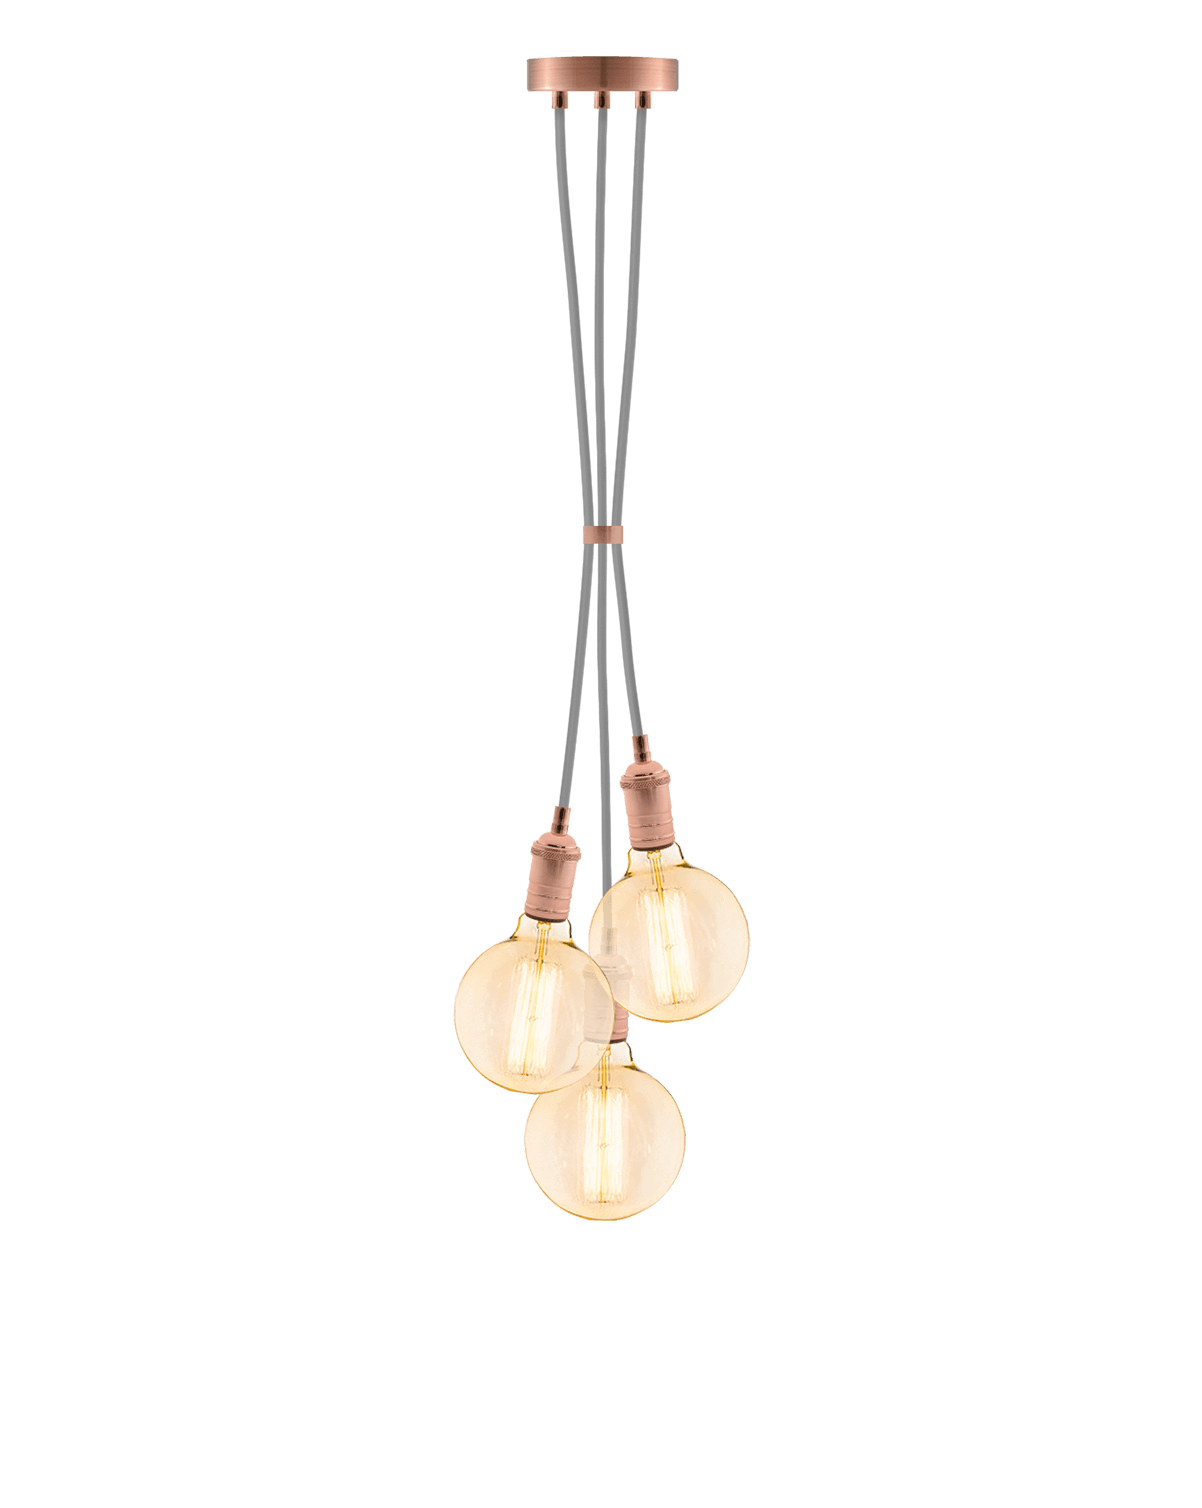 Cluster Chandelier - Grape: Grey and Copper Hangout Lighting 3 Grape